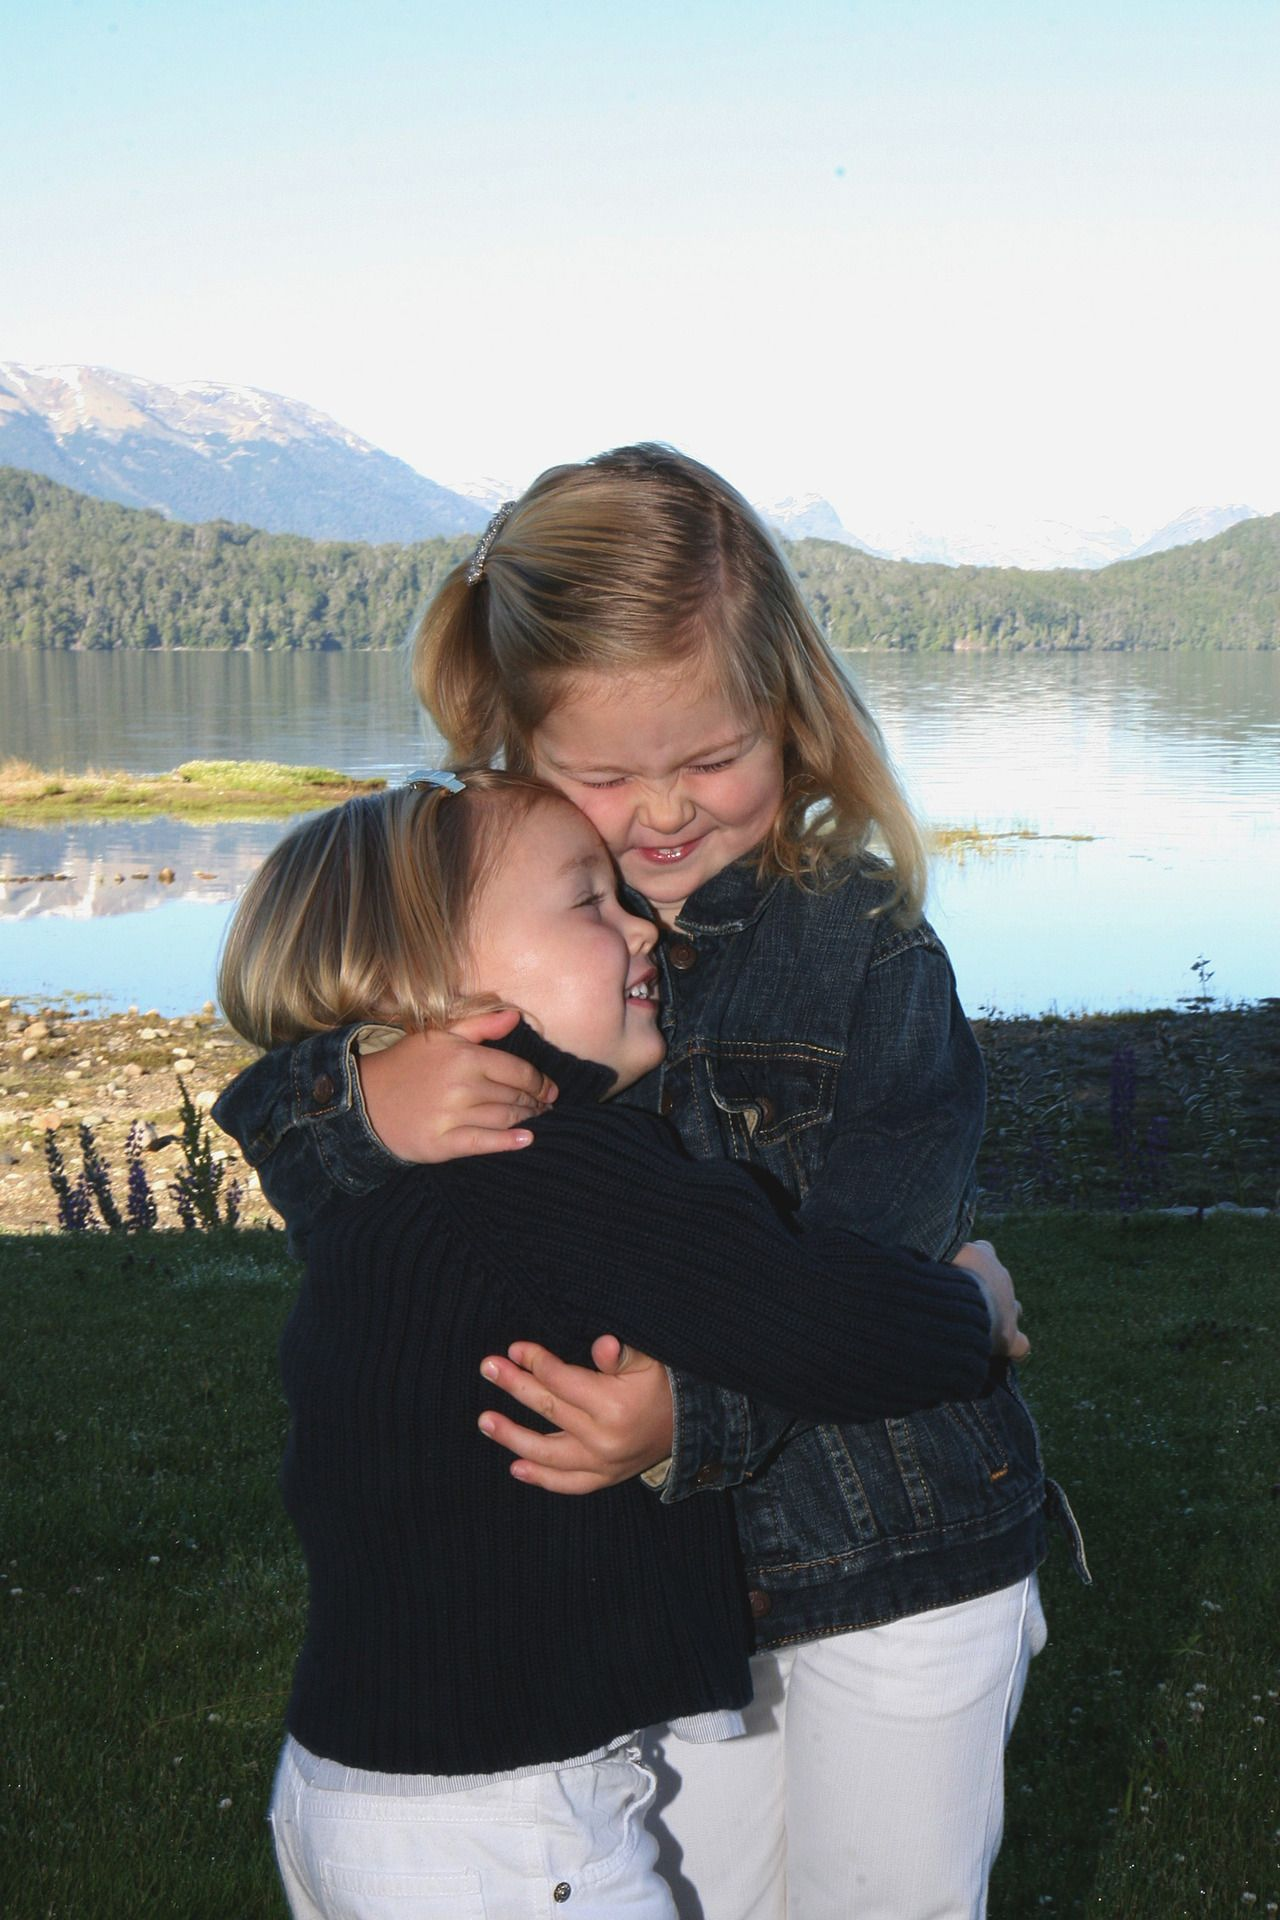 Princess Alexia gives her older sister Catharina-Amalia, Princess of Orange, a loving hug (King Willem-Alexander of the Netherlands & Queen Máxima of the Netherlands)